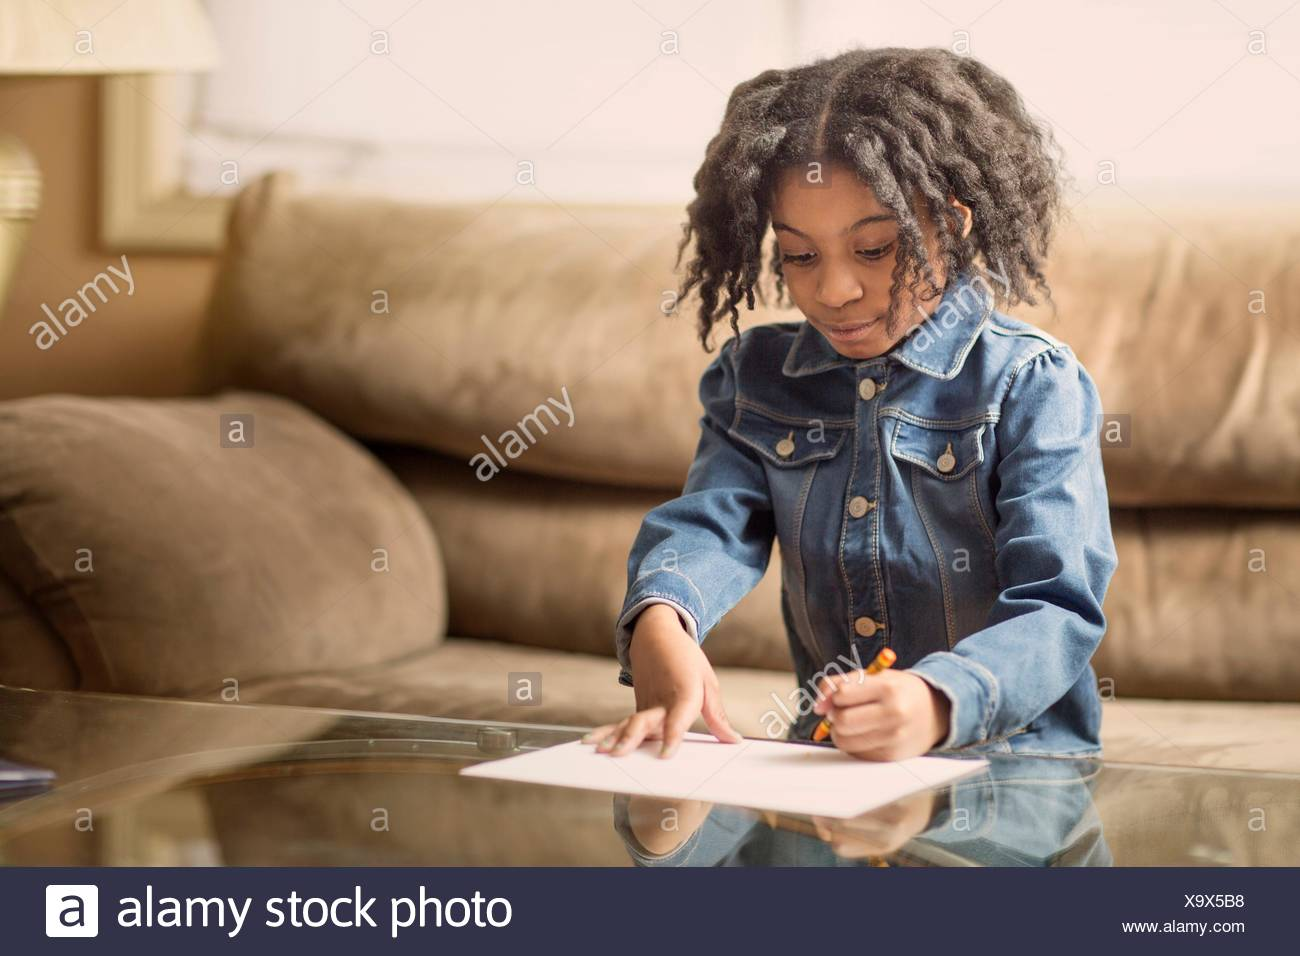 Girl drawing on coffee table - Stock Image